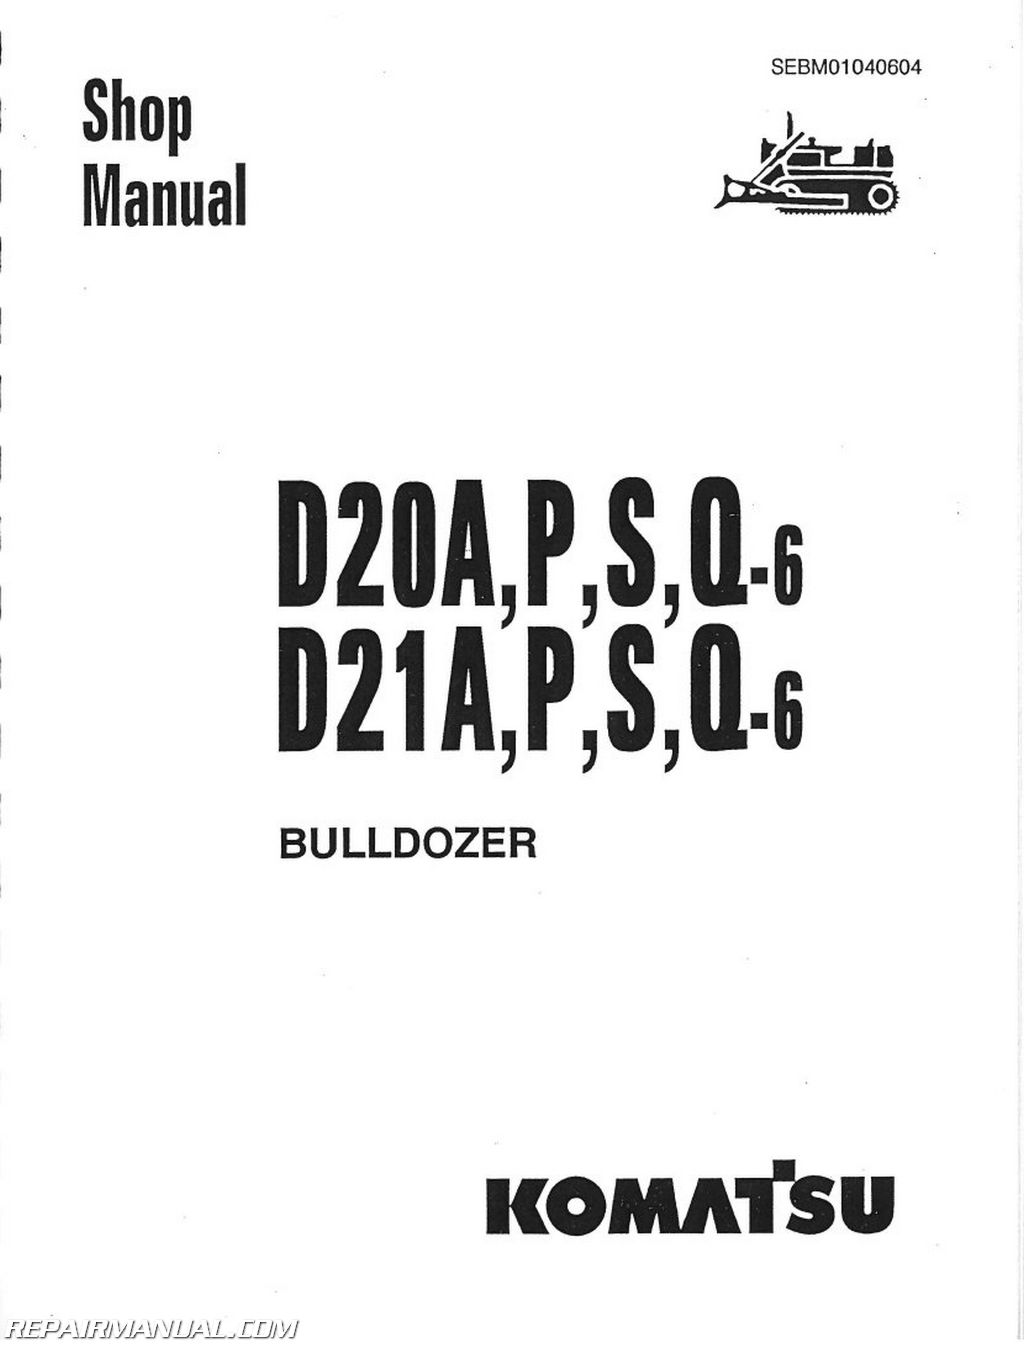 Komatsu D20 Wiring Diagram Will Be A Thing Excavators D21 D31 D37 Chassis Only Service Manual Rh Repairmanual Com Caterpillar Diagrams